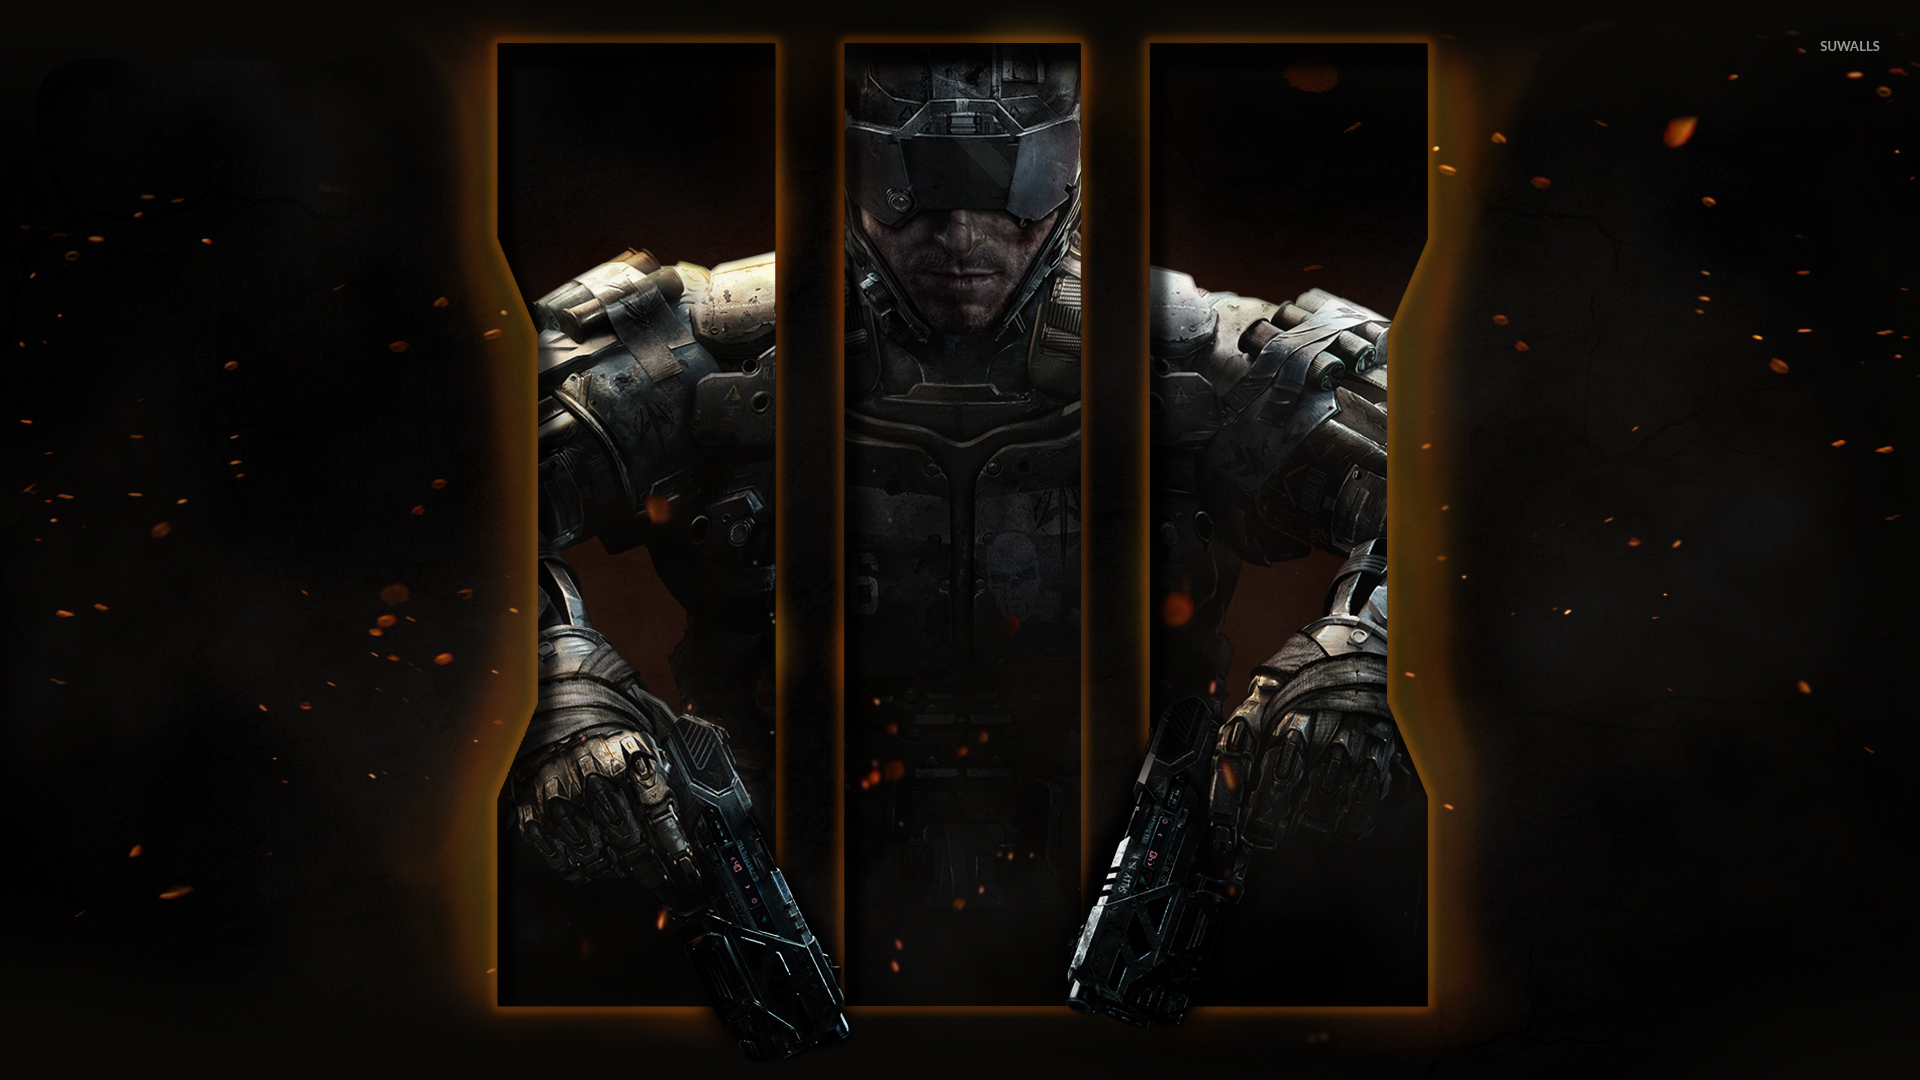 Call Of Duty Black Ops Iii 2 Wallpaper Game Wallpapers 49026